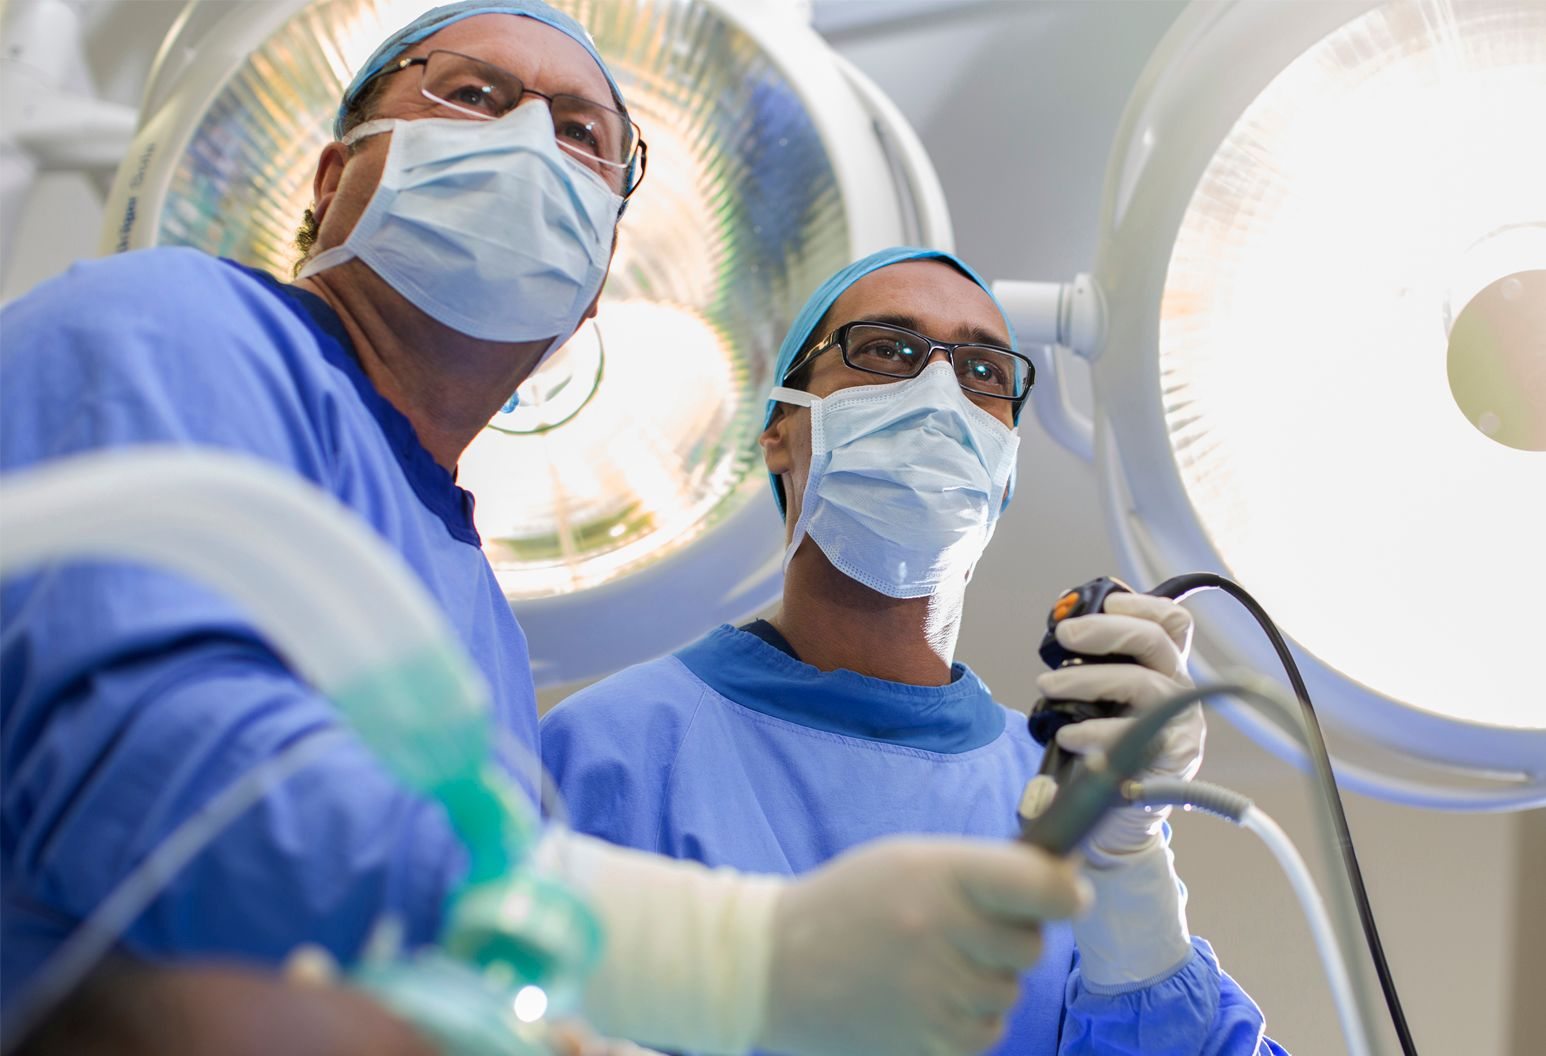 Surgeons holding equipment in operating theater